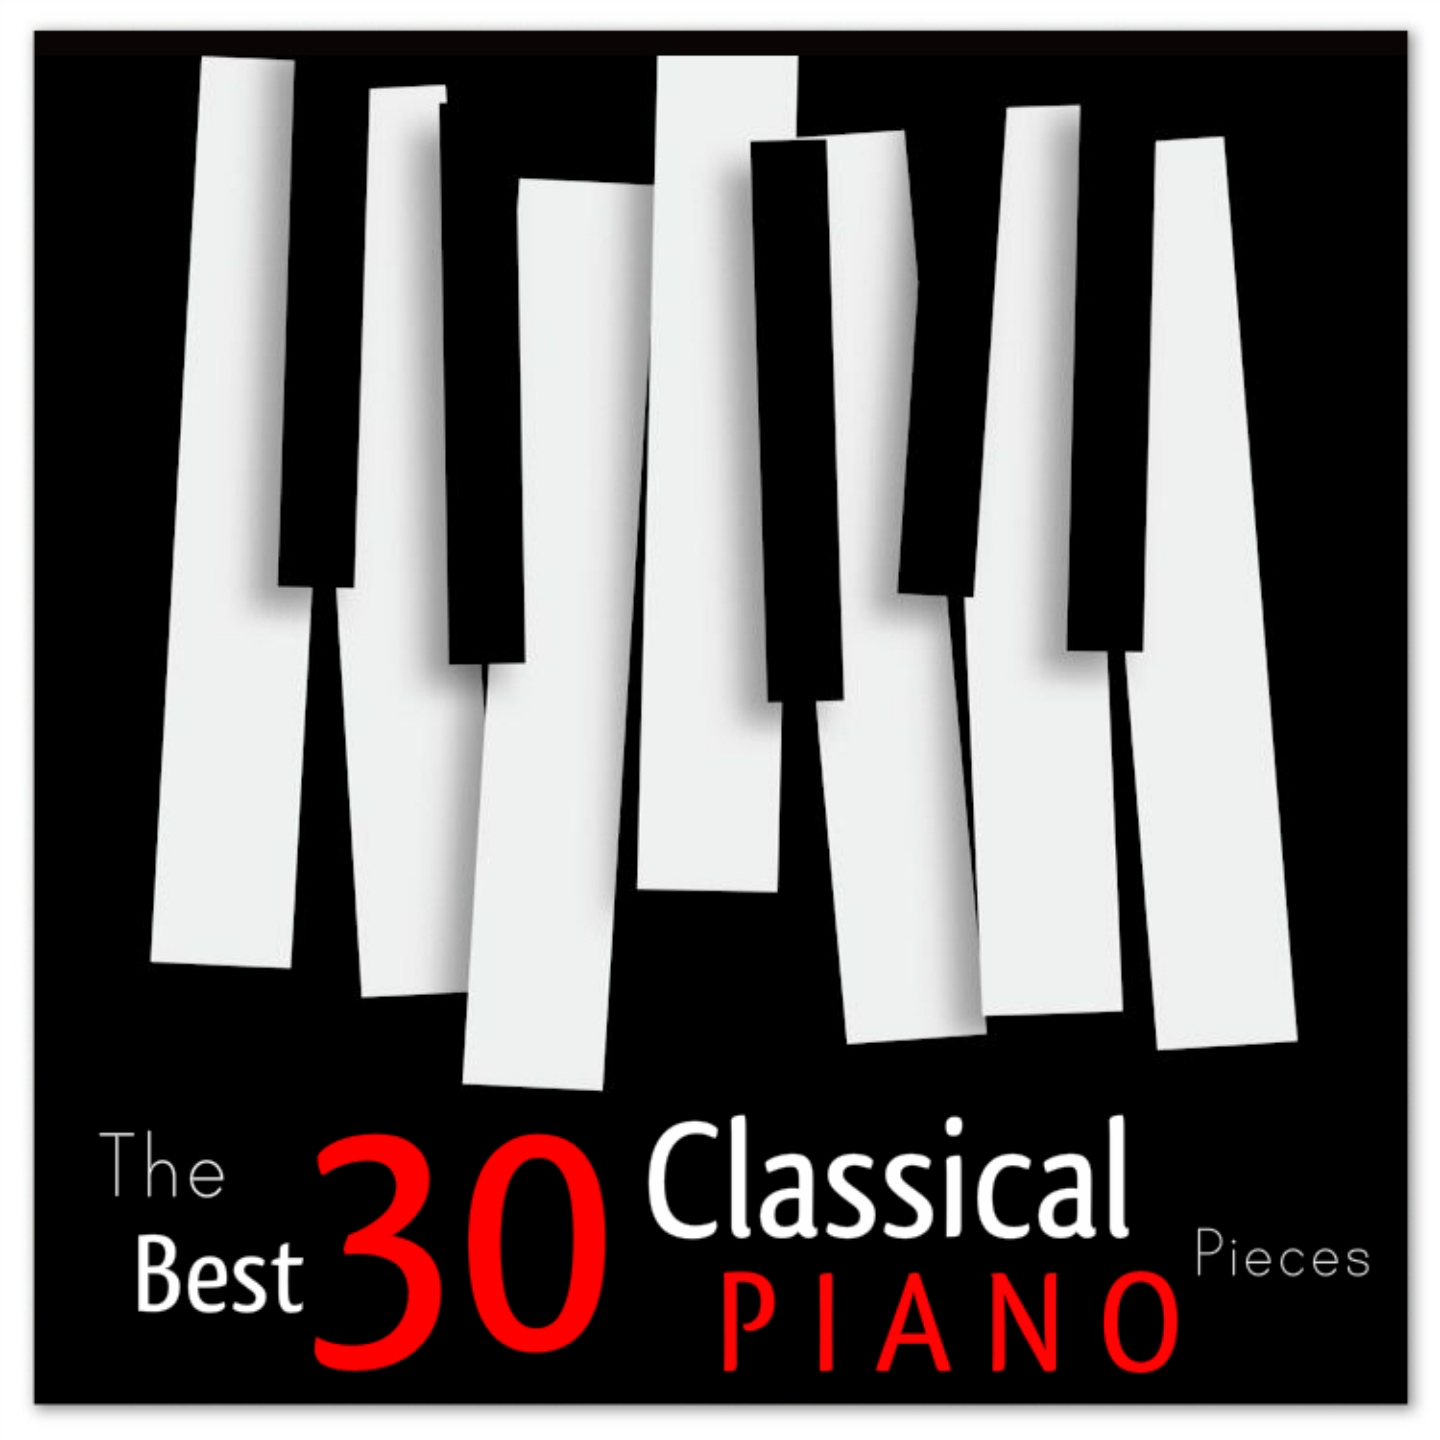 30 best classical piano